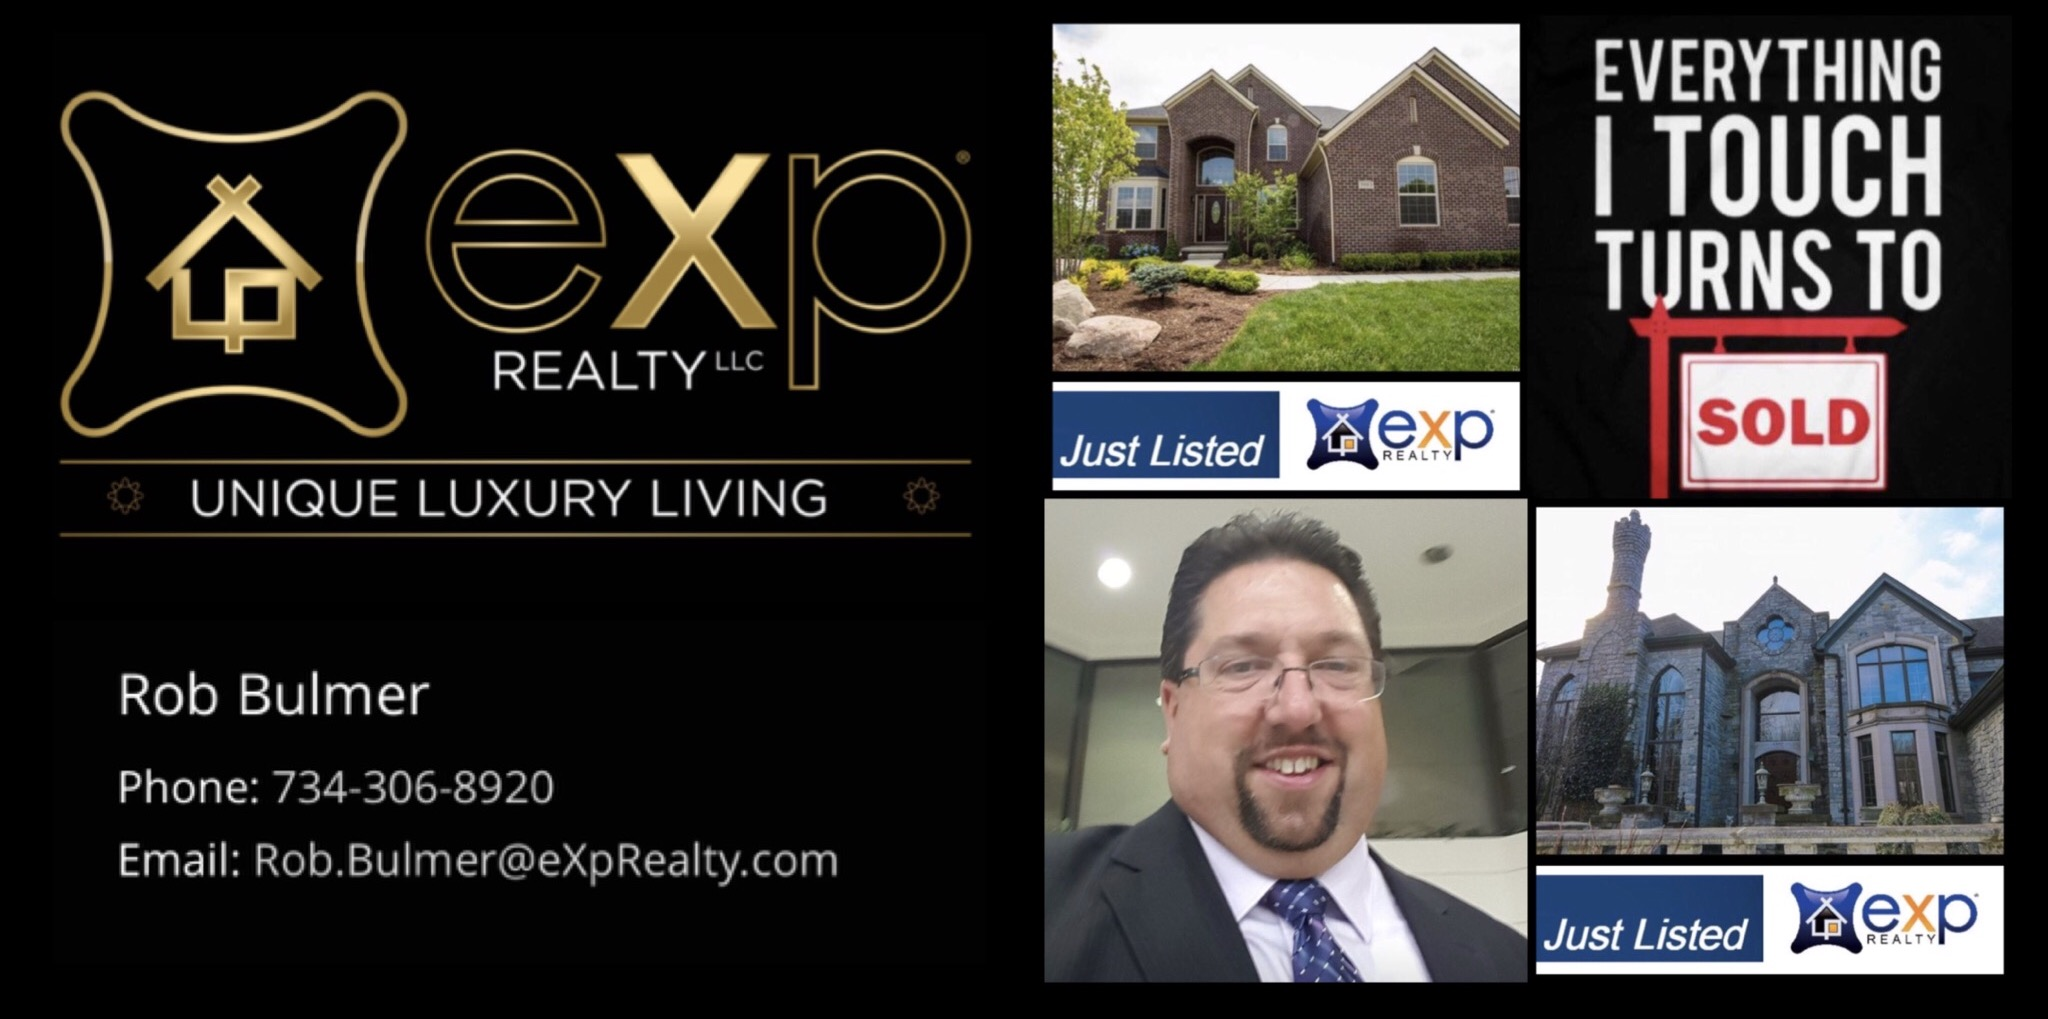 Rob Bulmer / Exp Realty